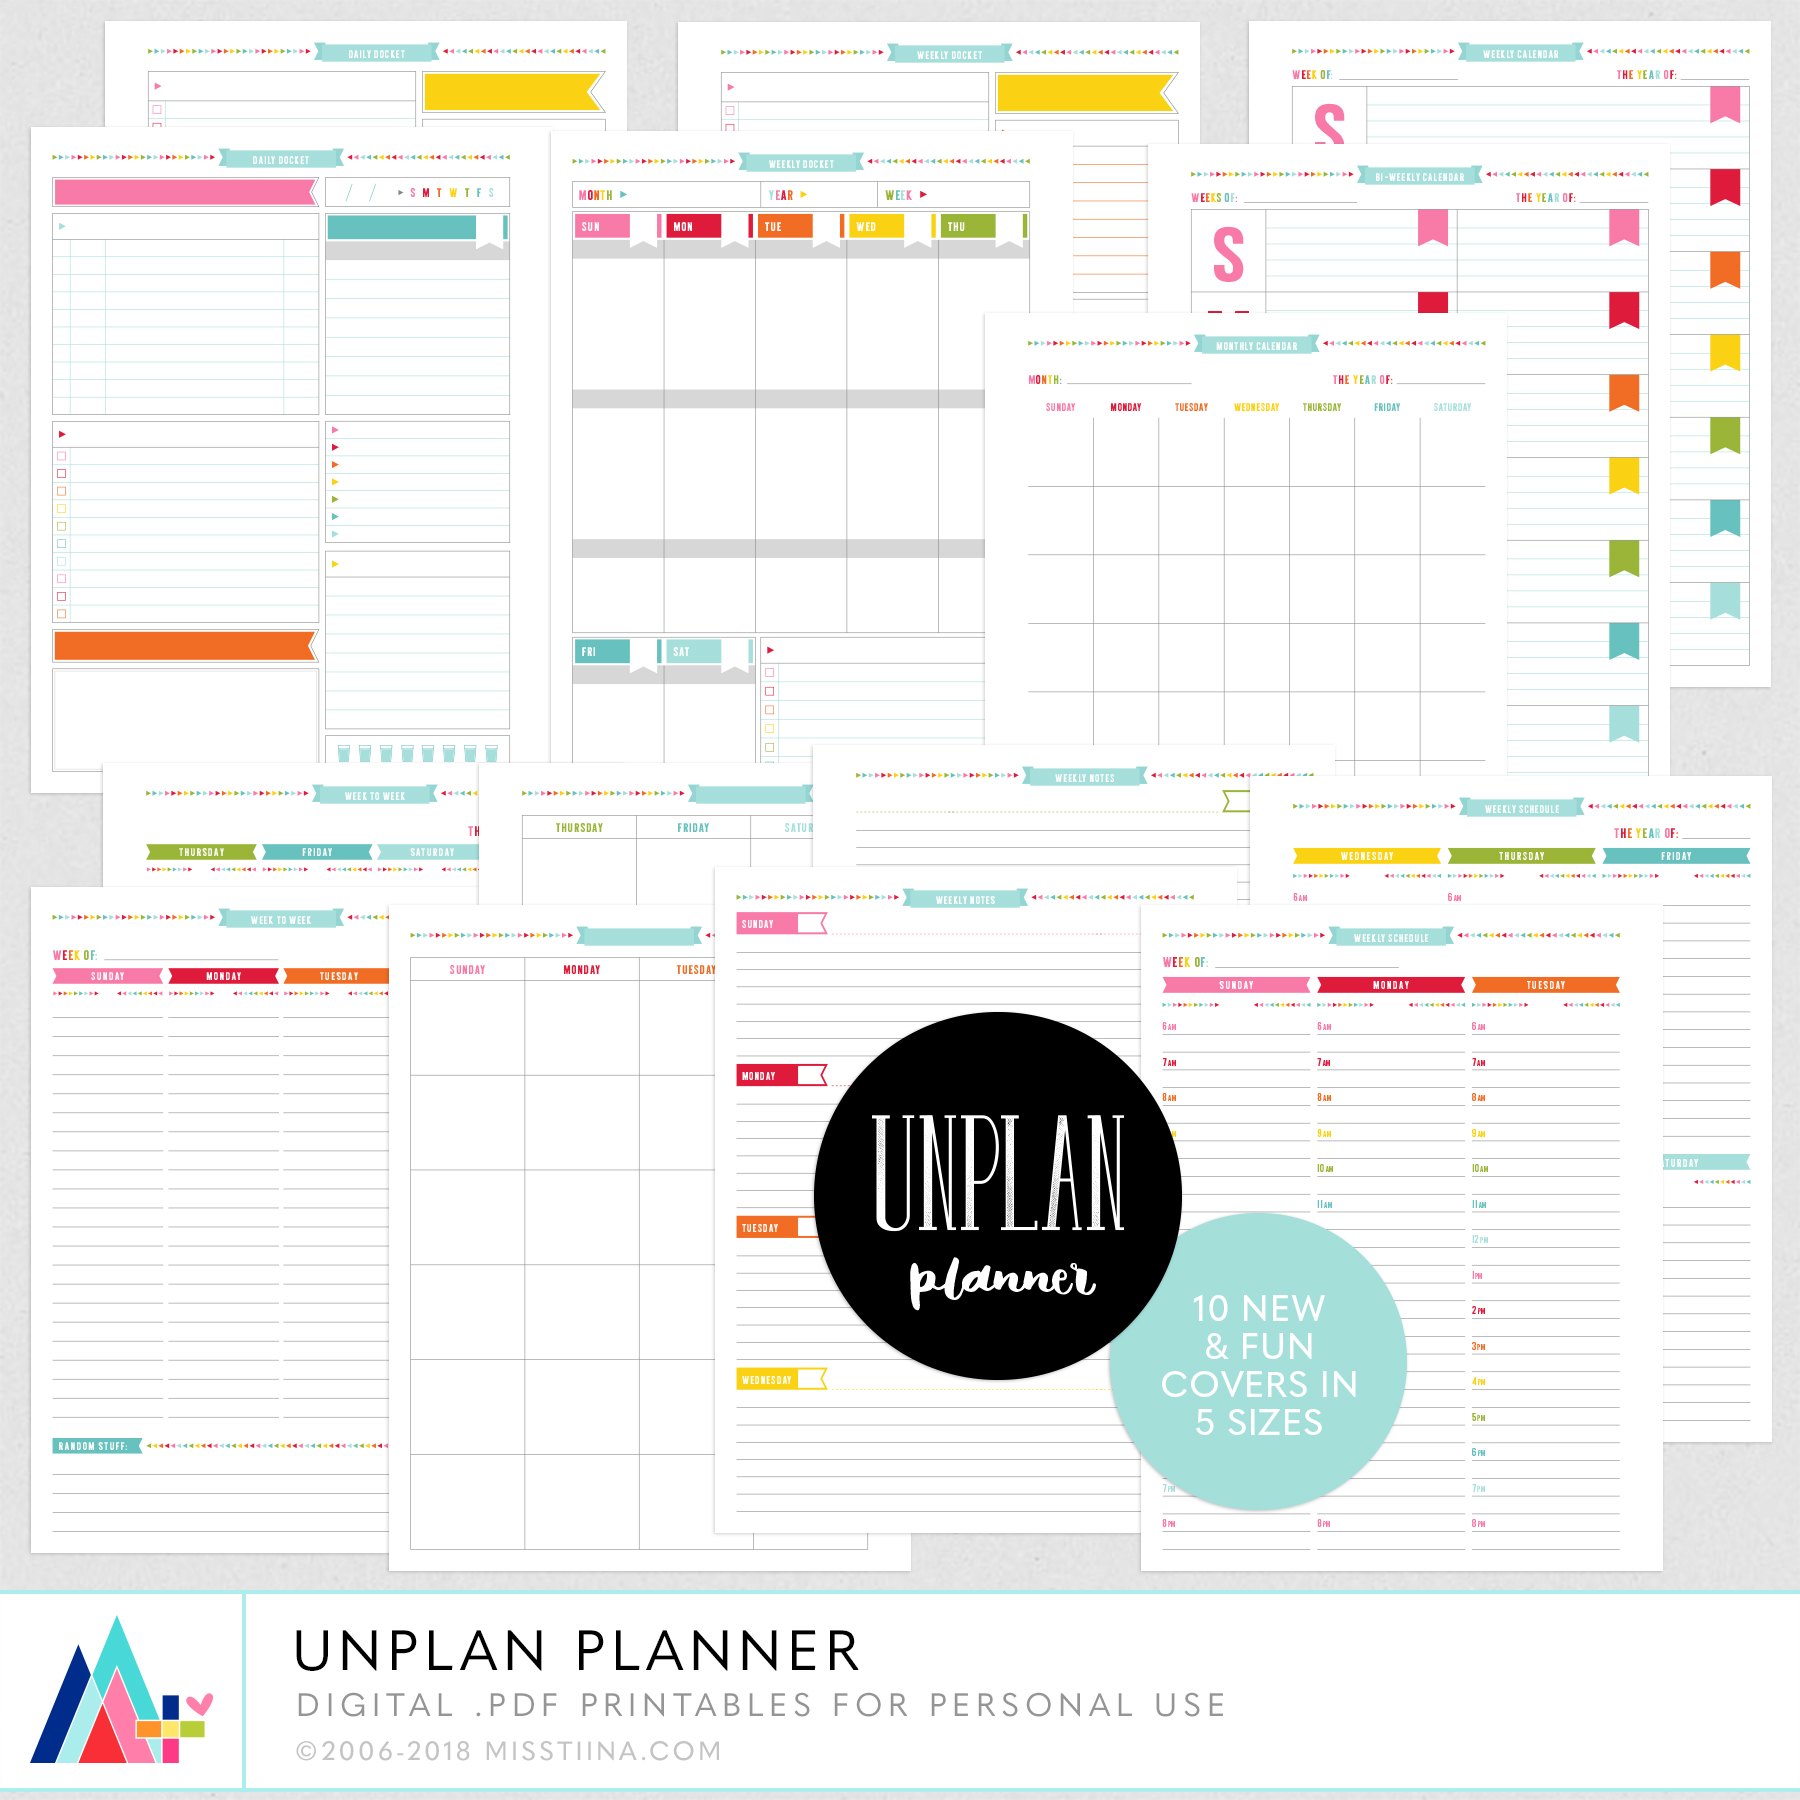 UNPLAN PLANNER PAGES